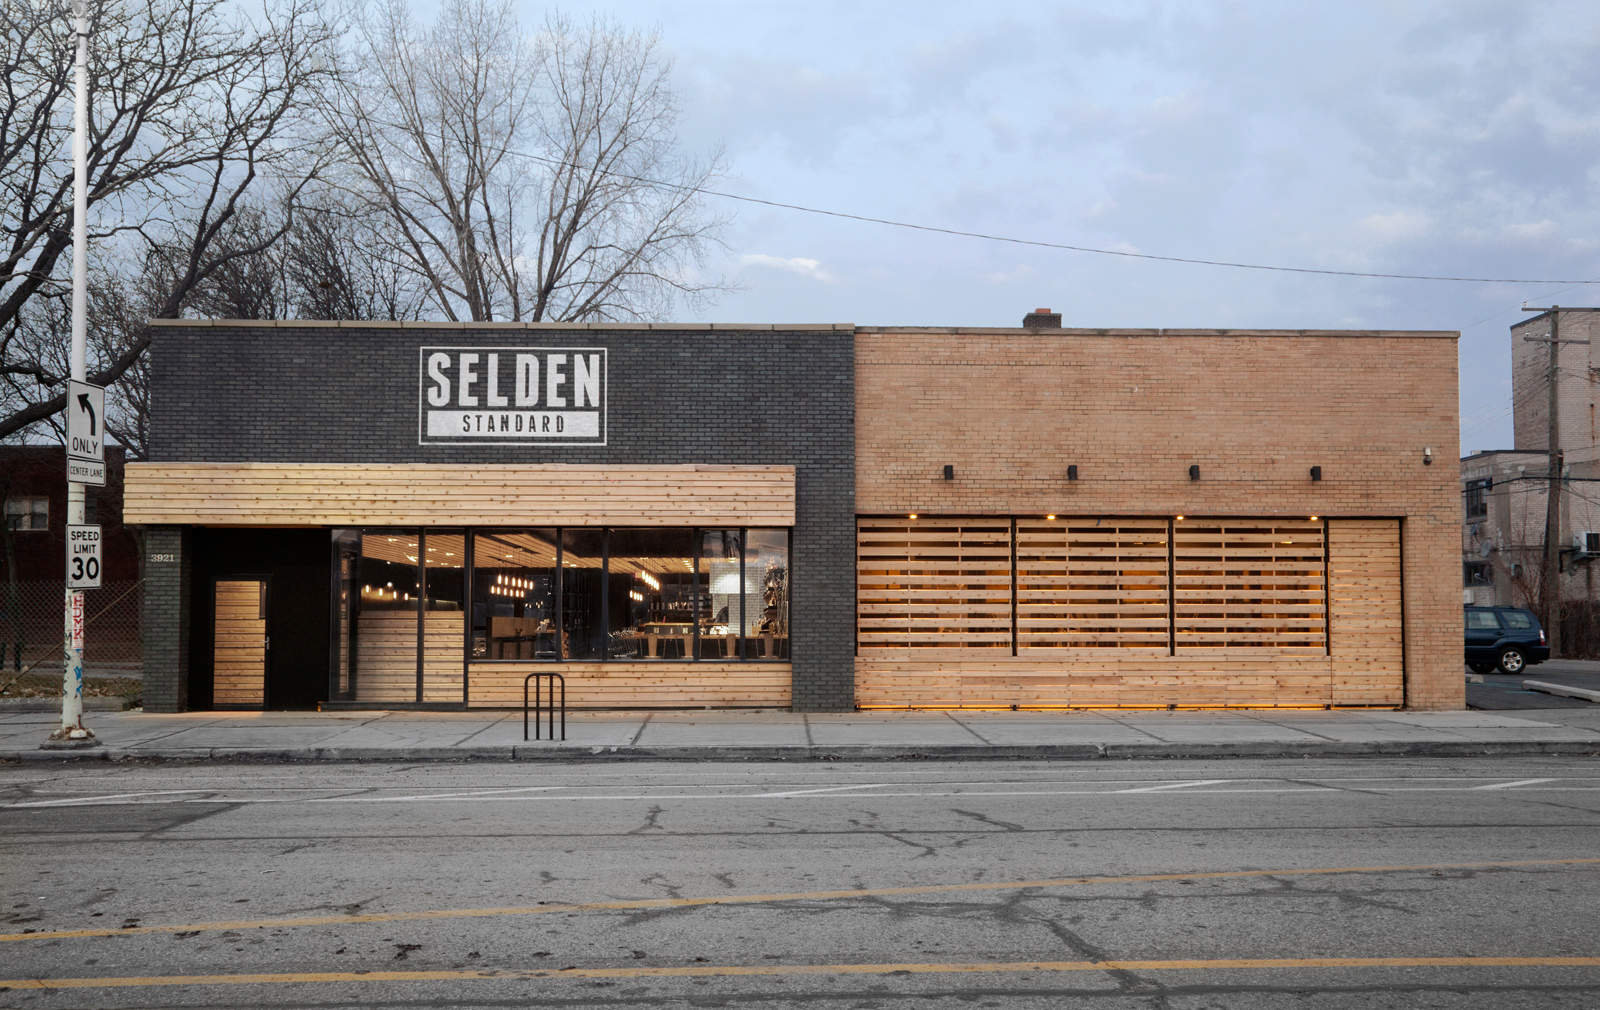 Selden Standard restaurant. Photography: PD Rearick